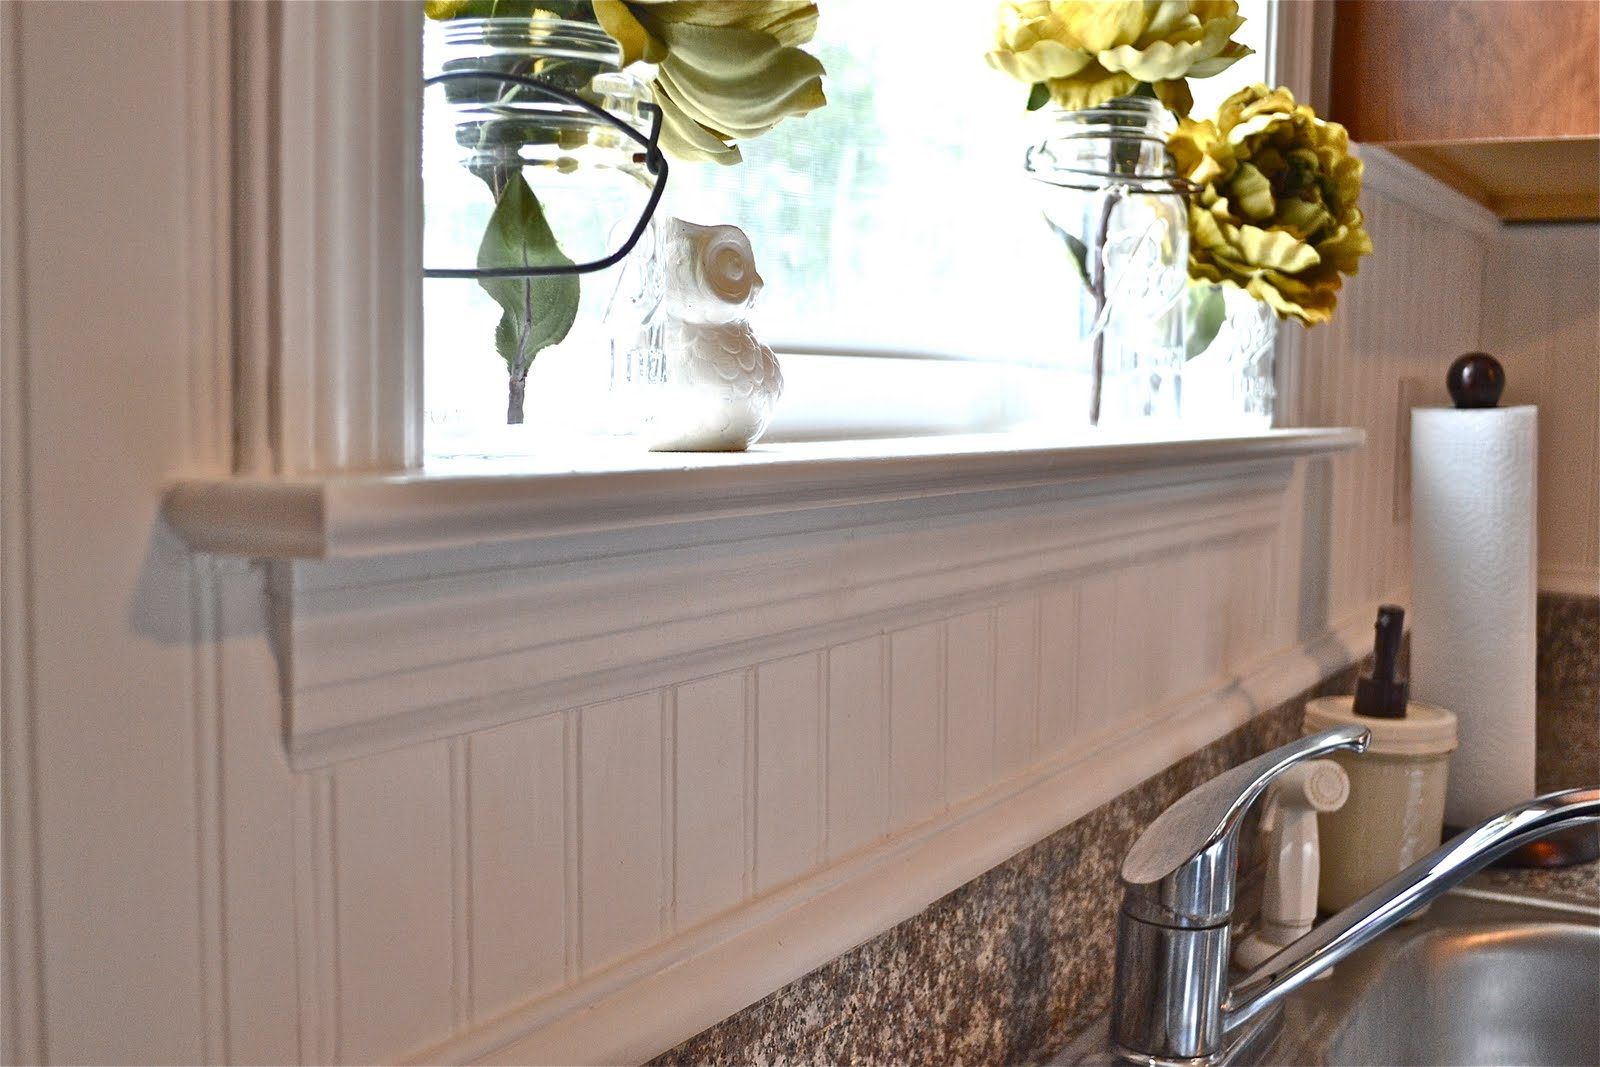 beadboard backsplash liz marie blog the caulk was used to smooth out all the edges including around all the trim pieces as you can see at the bottom where the beadboard meets the granite we